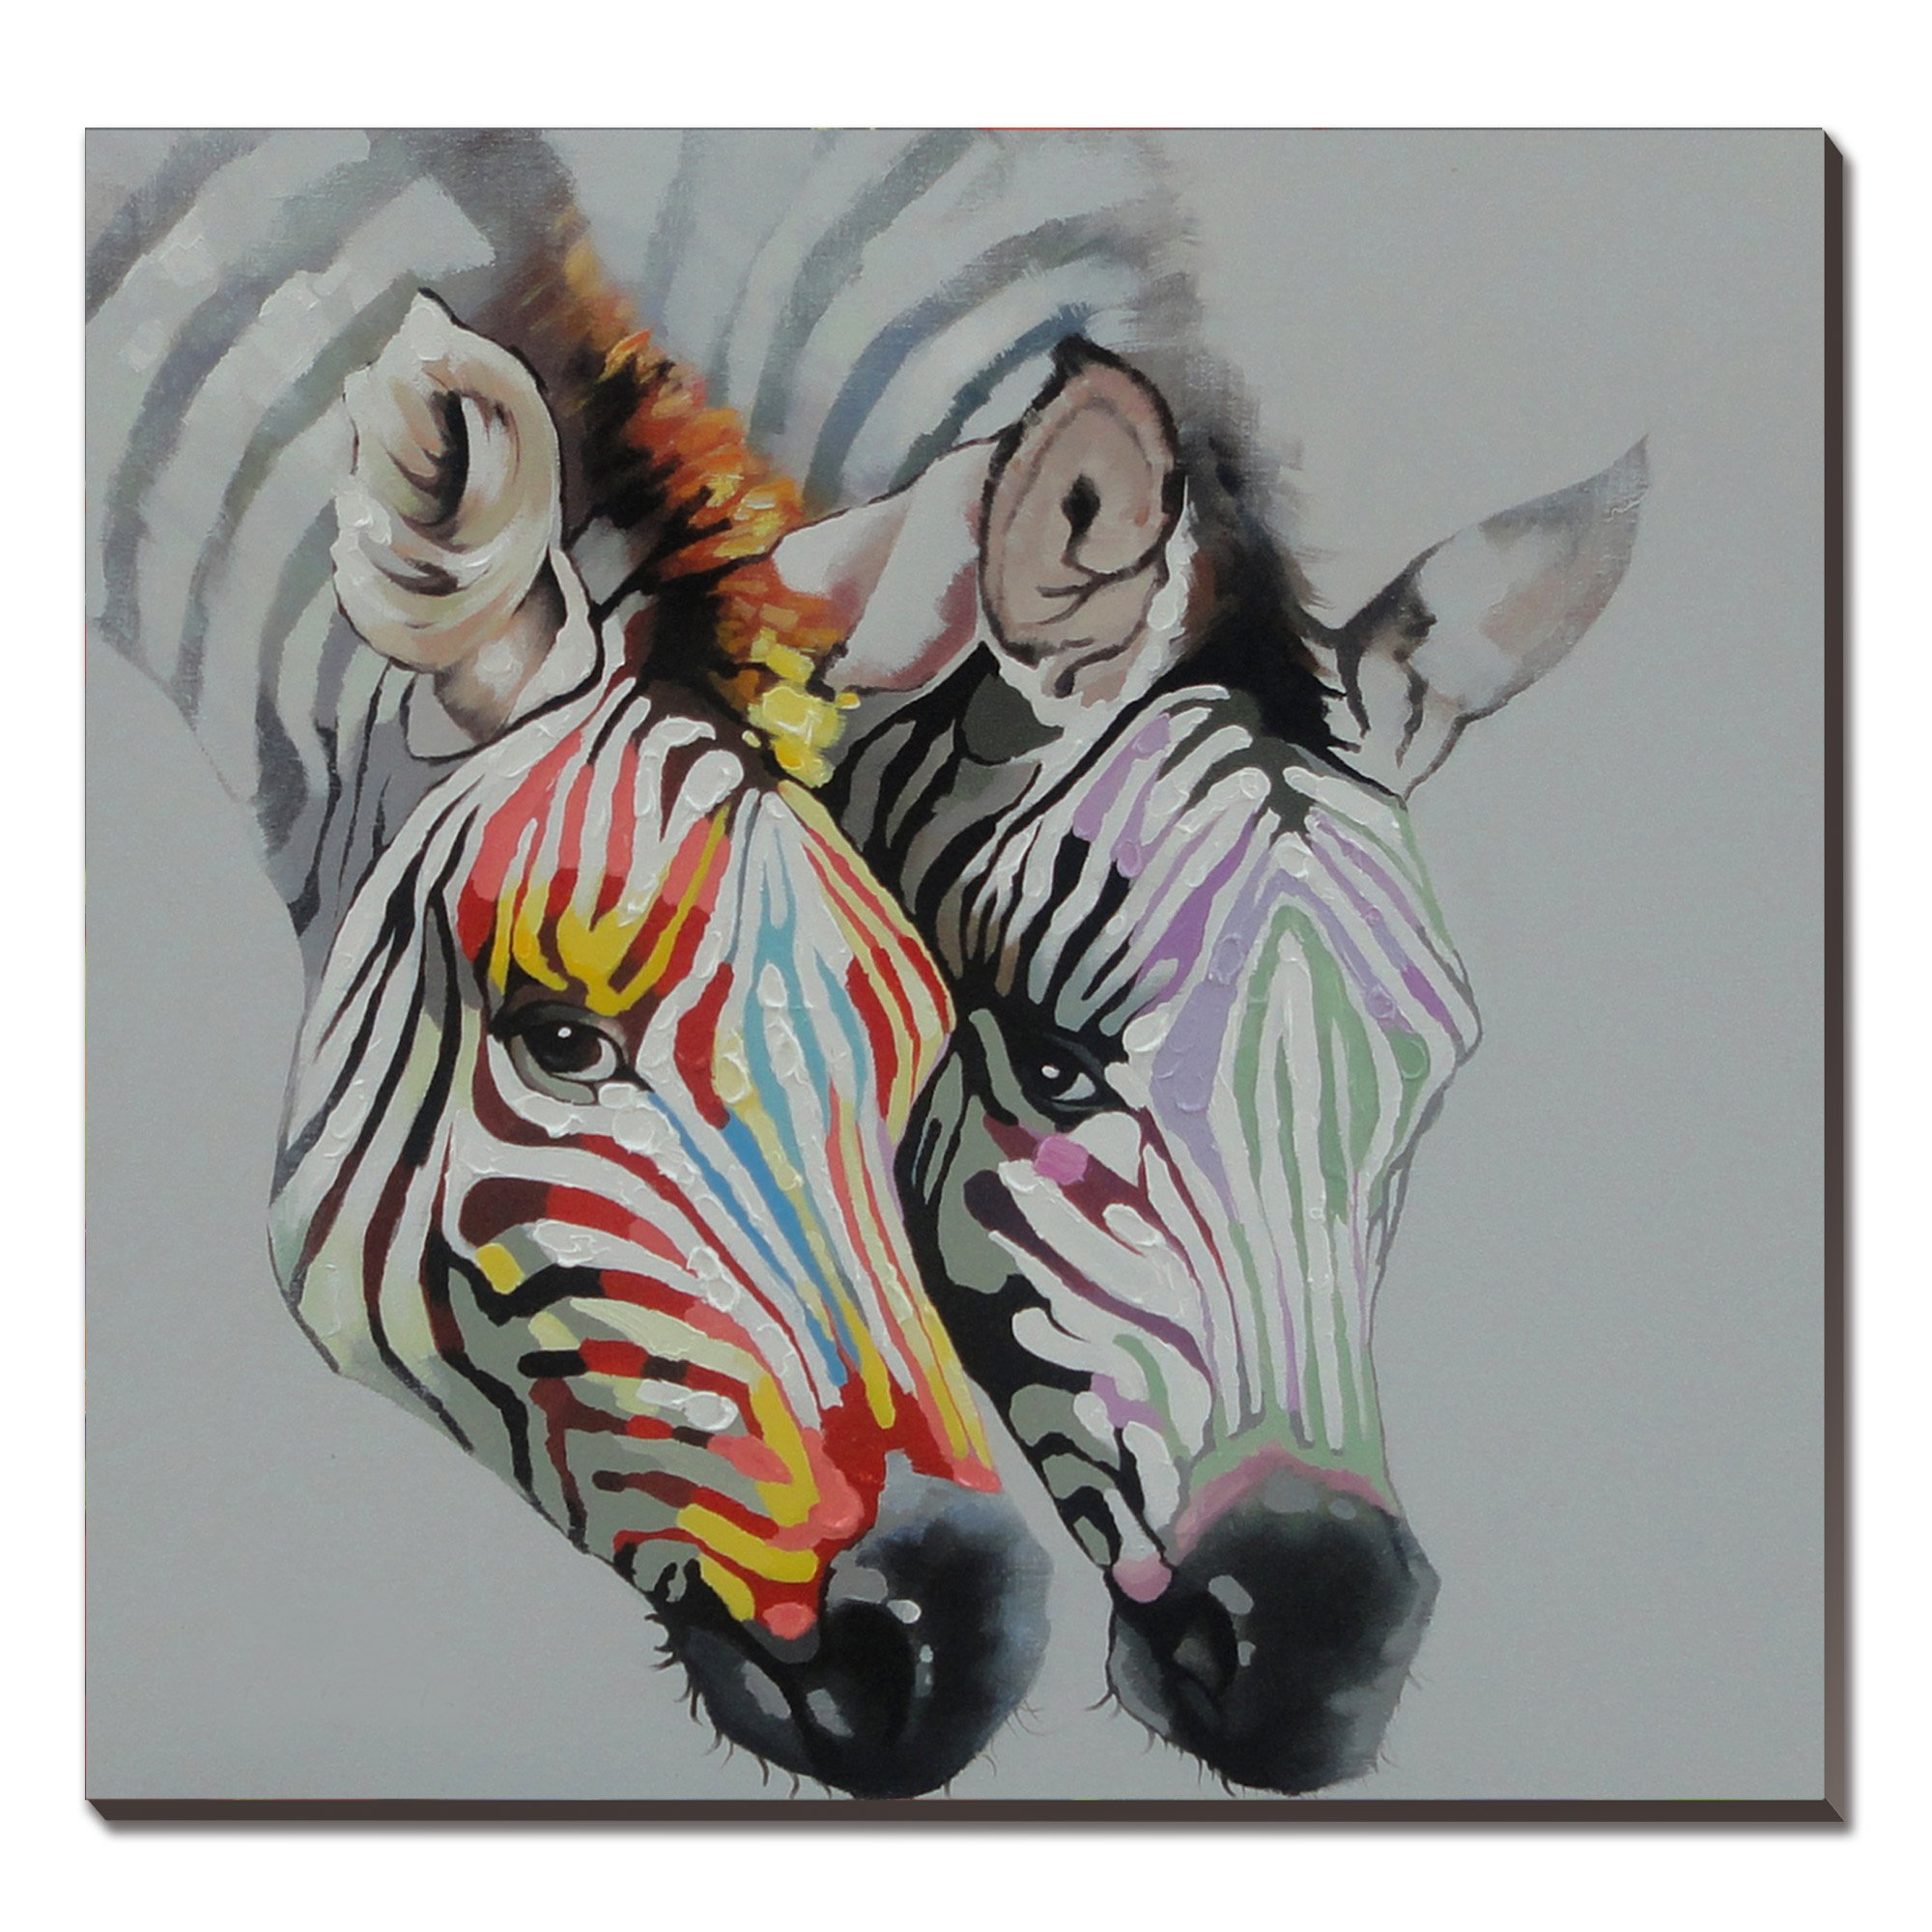 3Hdeko-Zebra Oil Painting on Canvas 30x30inch Gray Animal Artwork Home Decor for Living Room- Ready to hang! by 3Hdeko (Image #1)